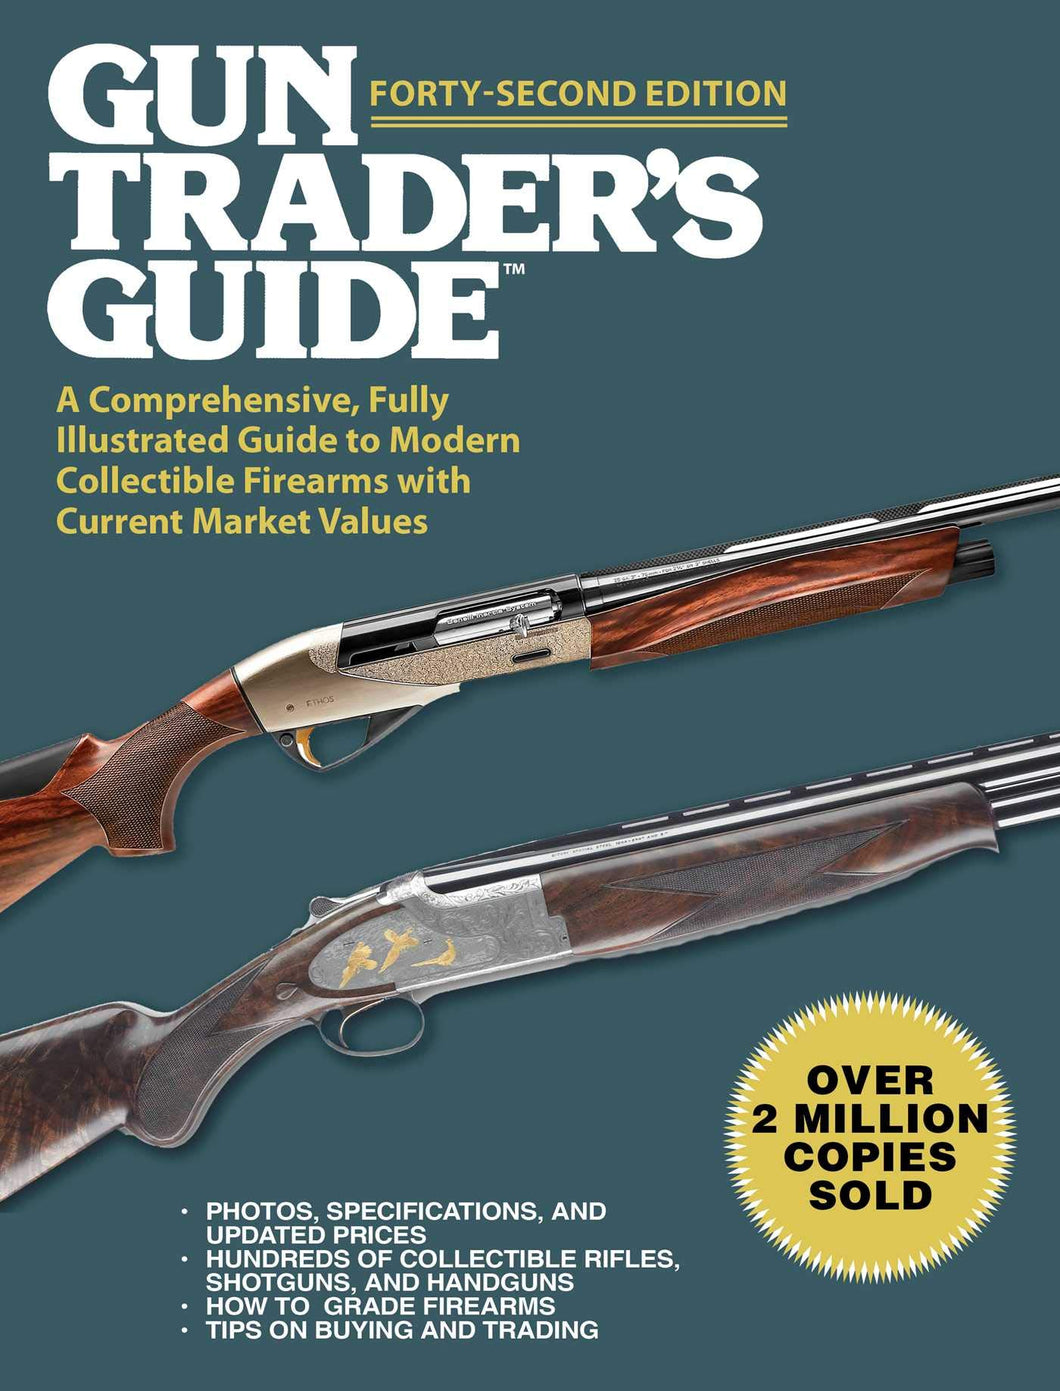 Gun Trader's Guide, Forty-Second Edition: A Comprehensive, Fully Illustrated Guide to Modern Collectible Firearms with Current Market Values - Tolerant Planet